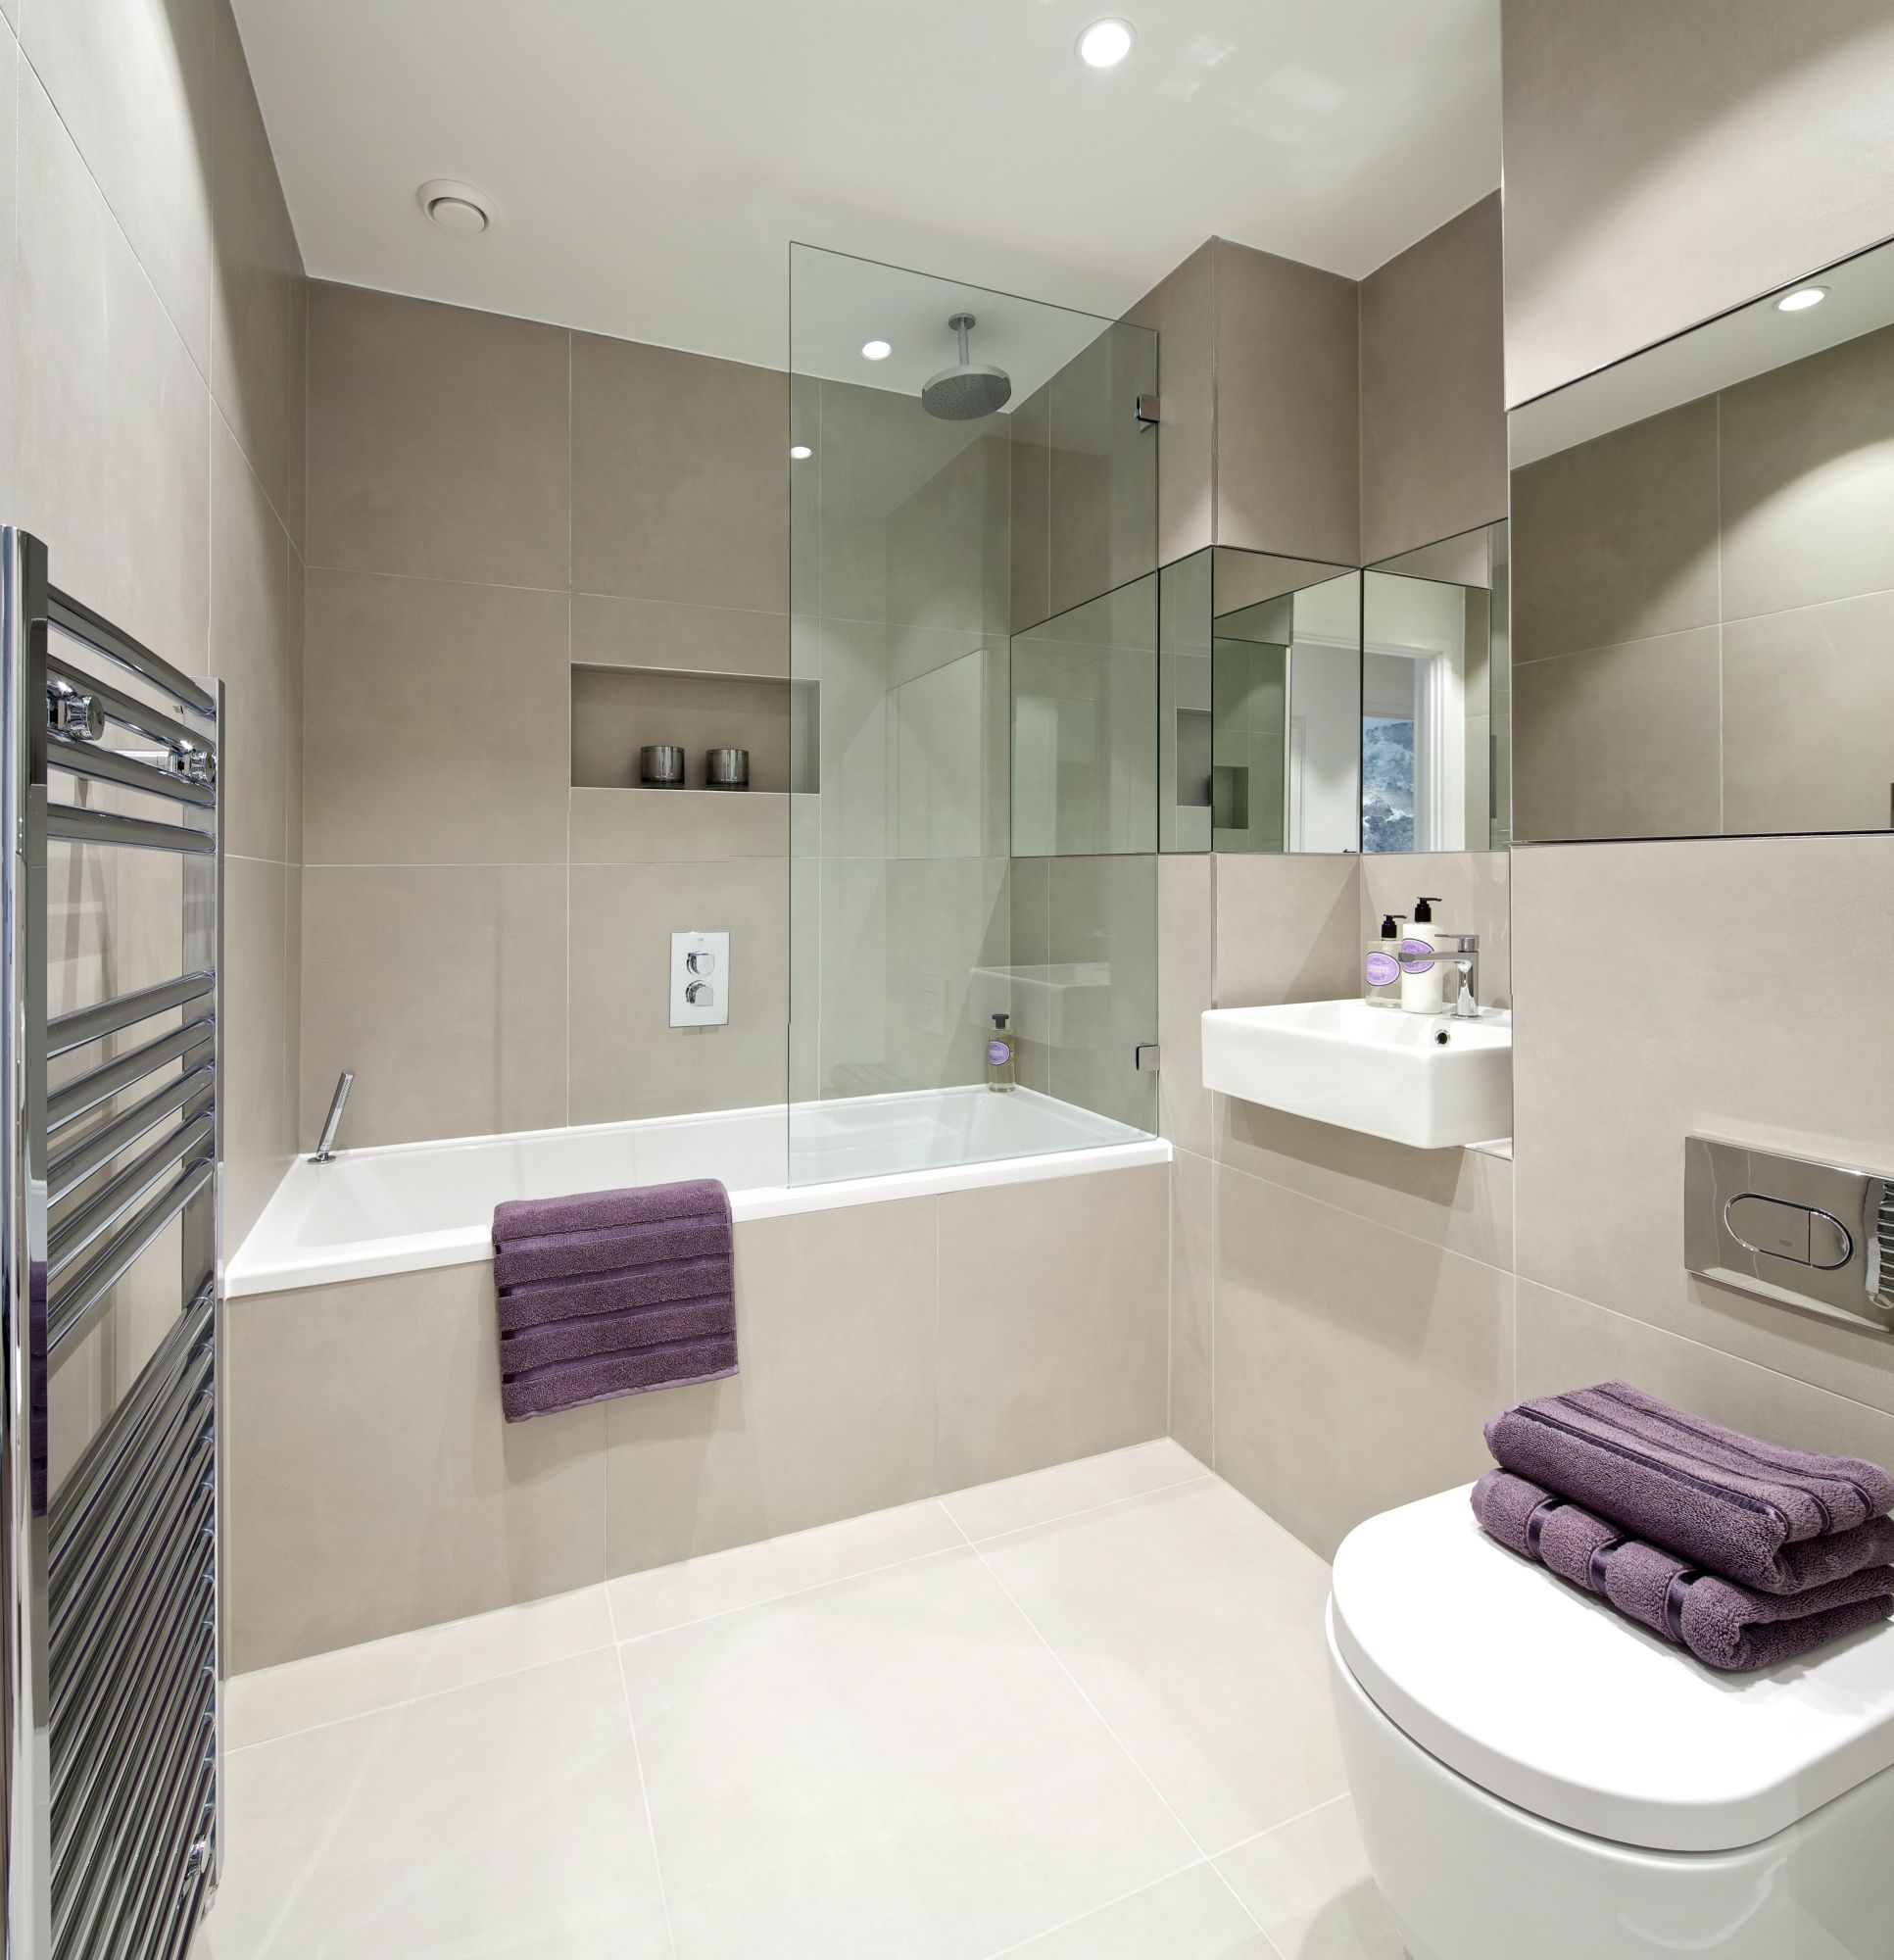 House Bathroom Design Stunning Home Interiors Bathroom Another Stunning Show